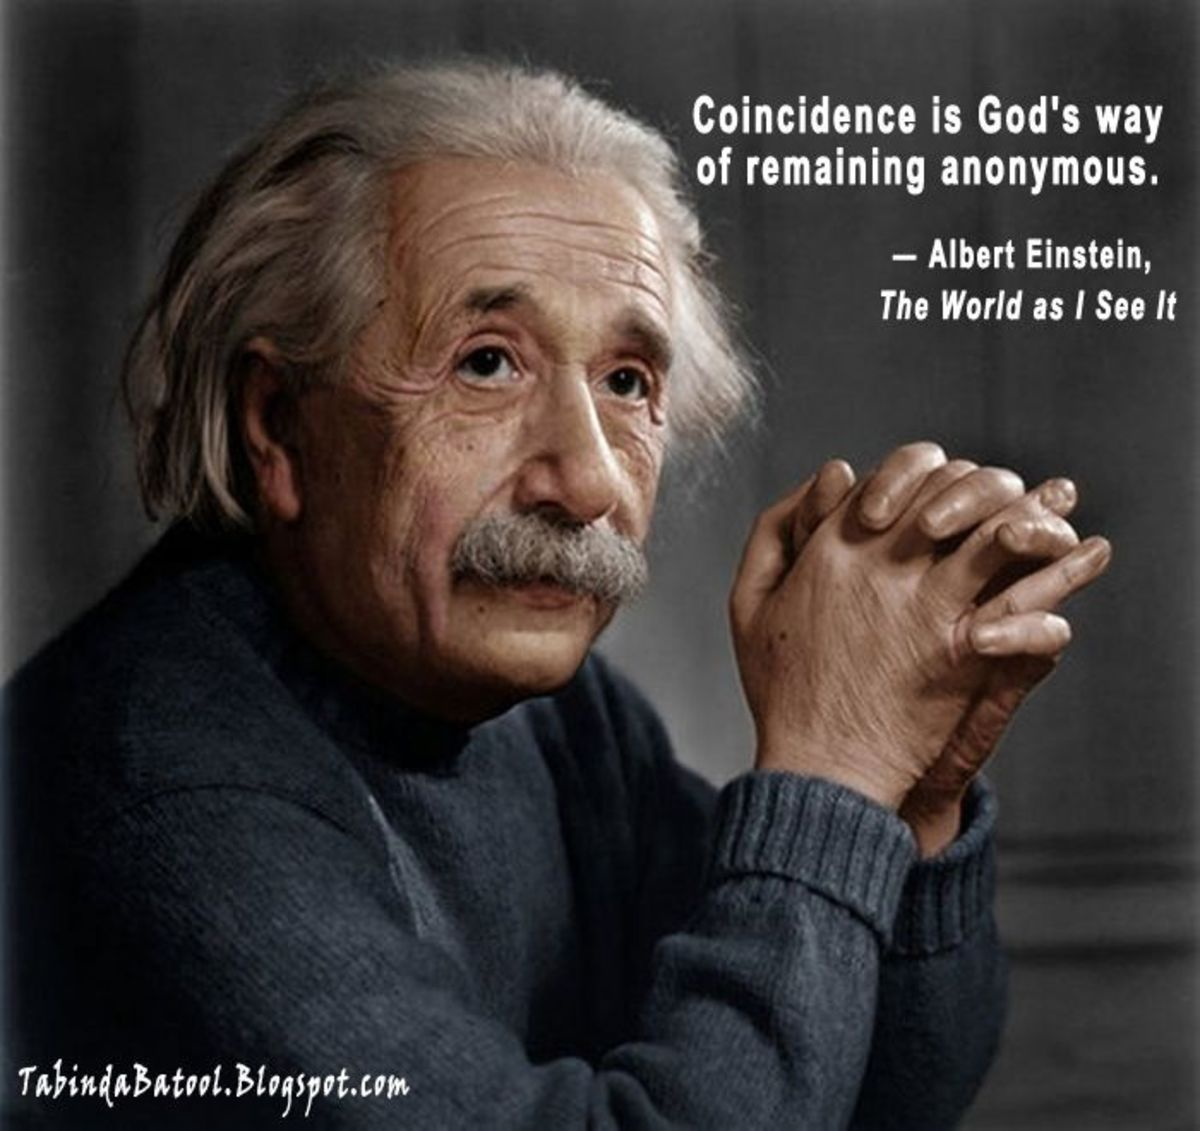 "Quote by Albert Einstein from 'The World As I See It""."